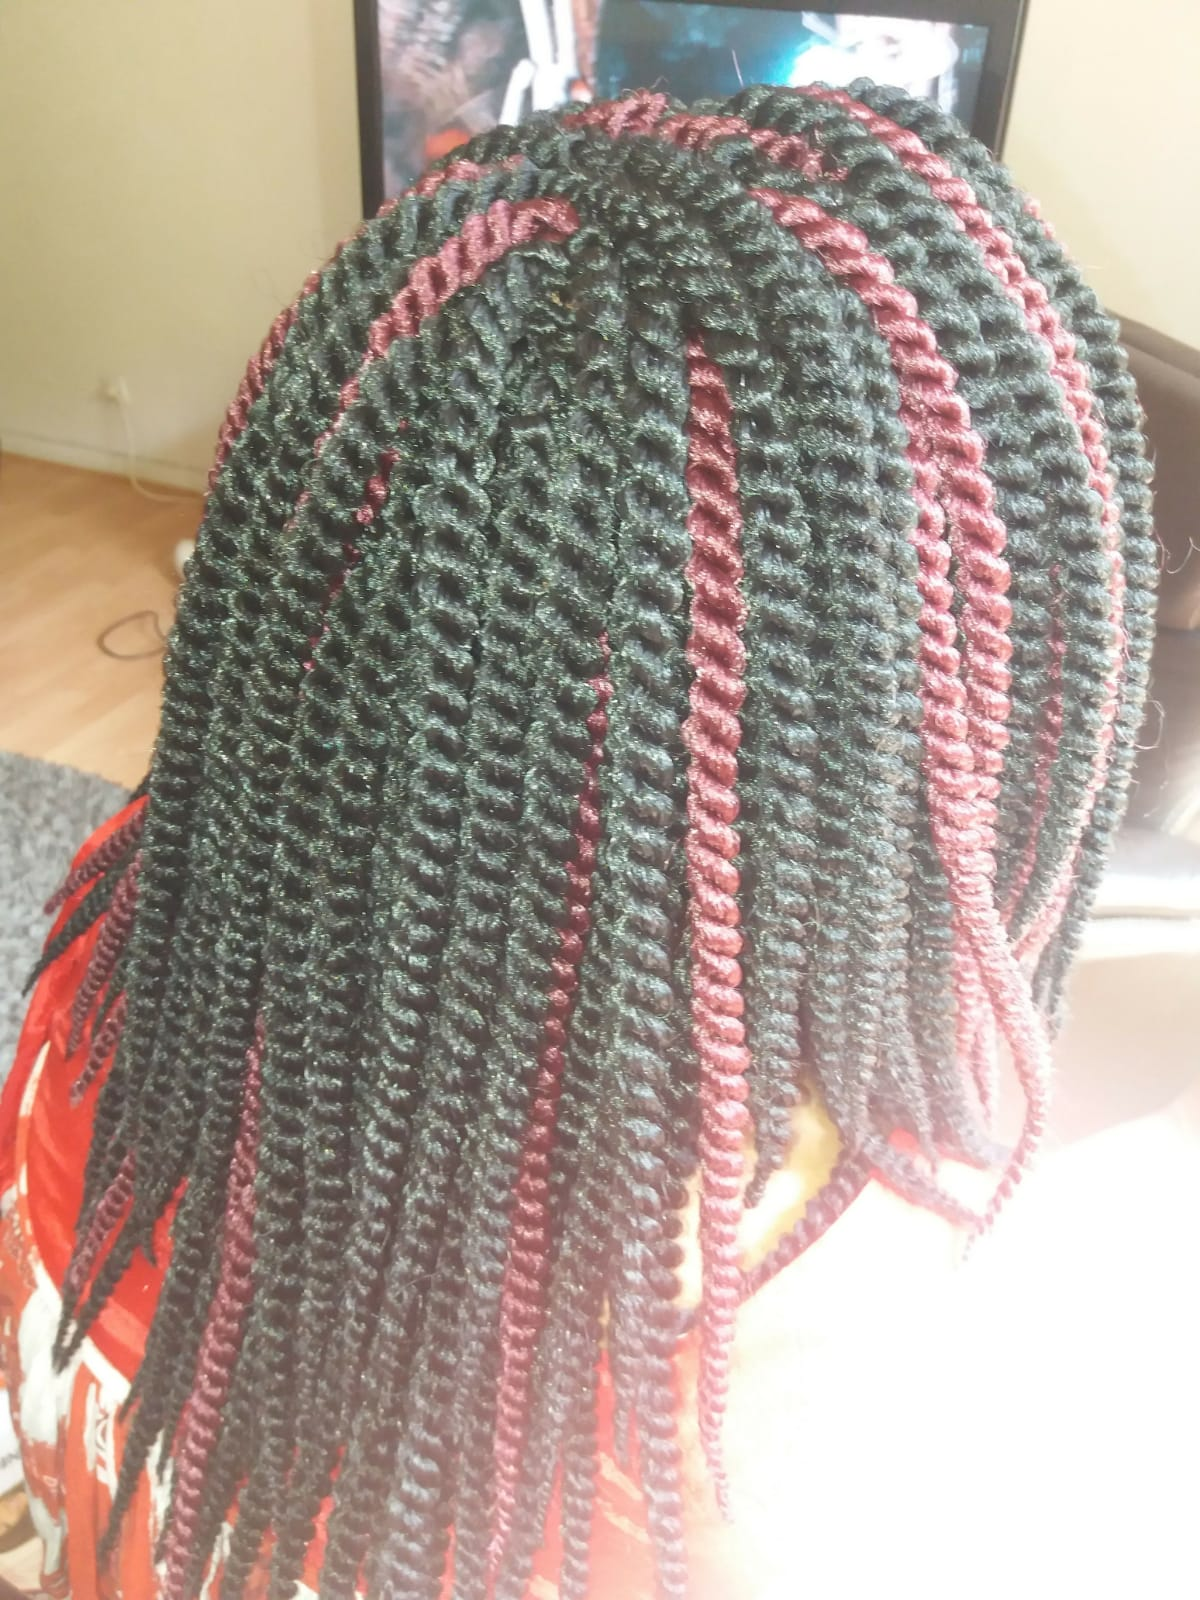 salon de coiffure afro tresse tresses box braids crochet braids vanilles tissages paris 75 77 78 91 92 93 94 95 HQLECPCO